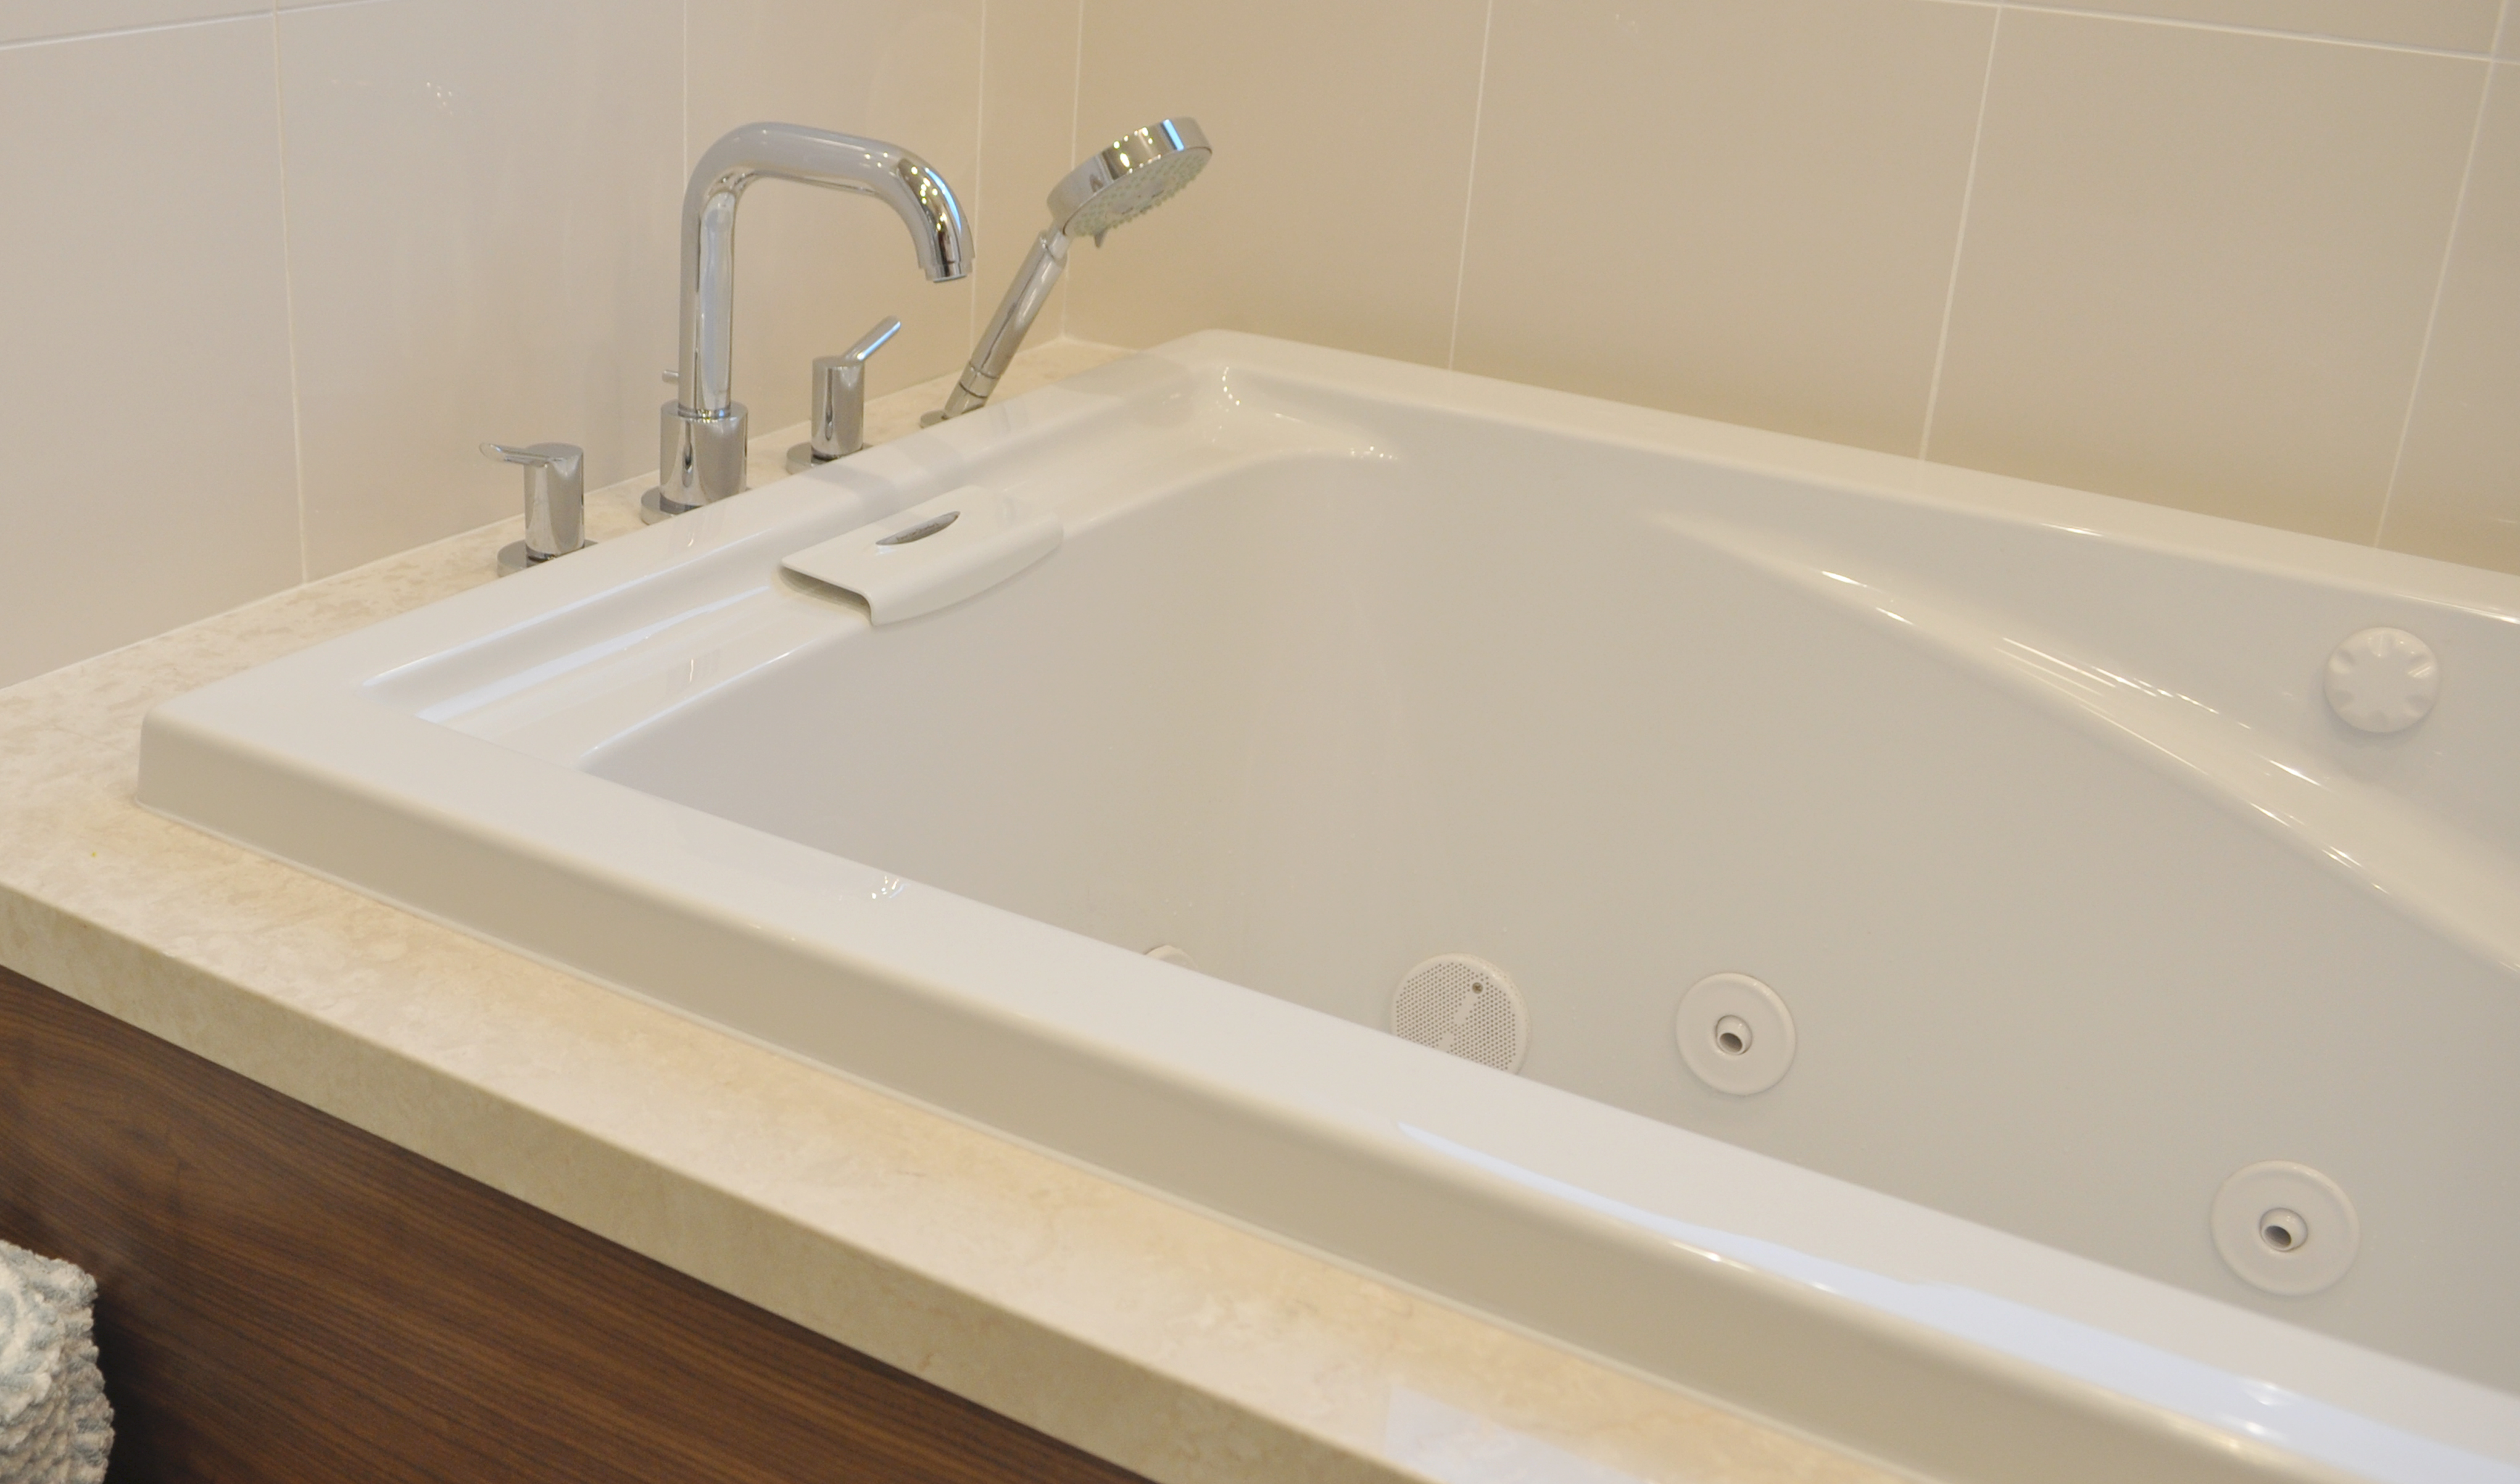 new how to remodel a bathroom online-New How to Remodel A Bathroom Image